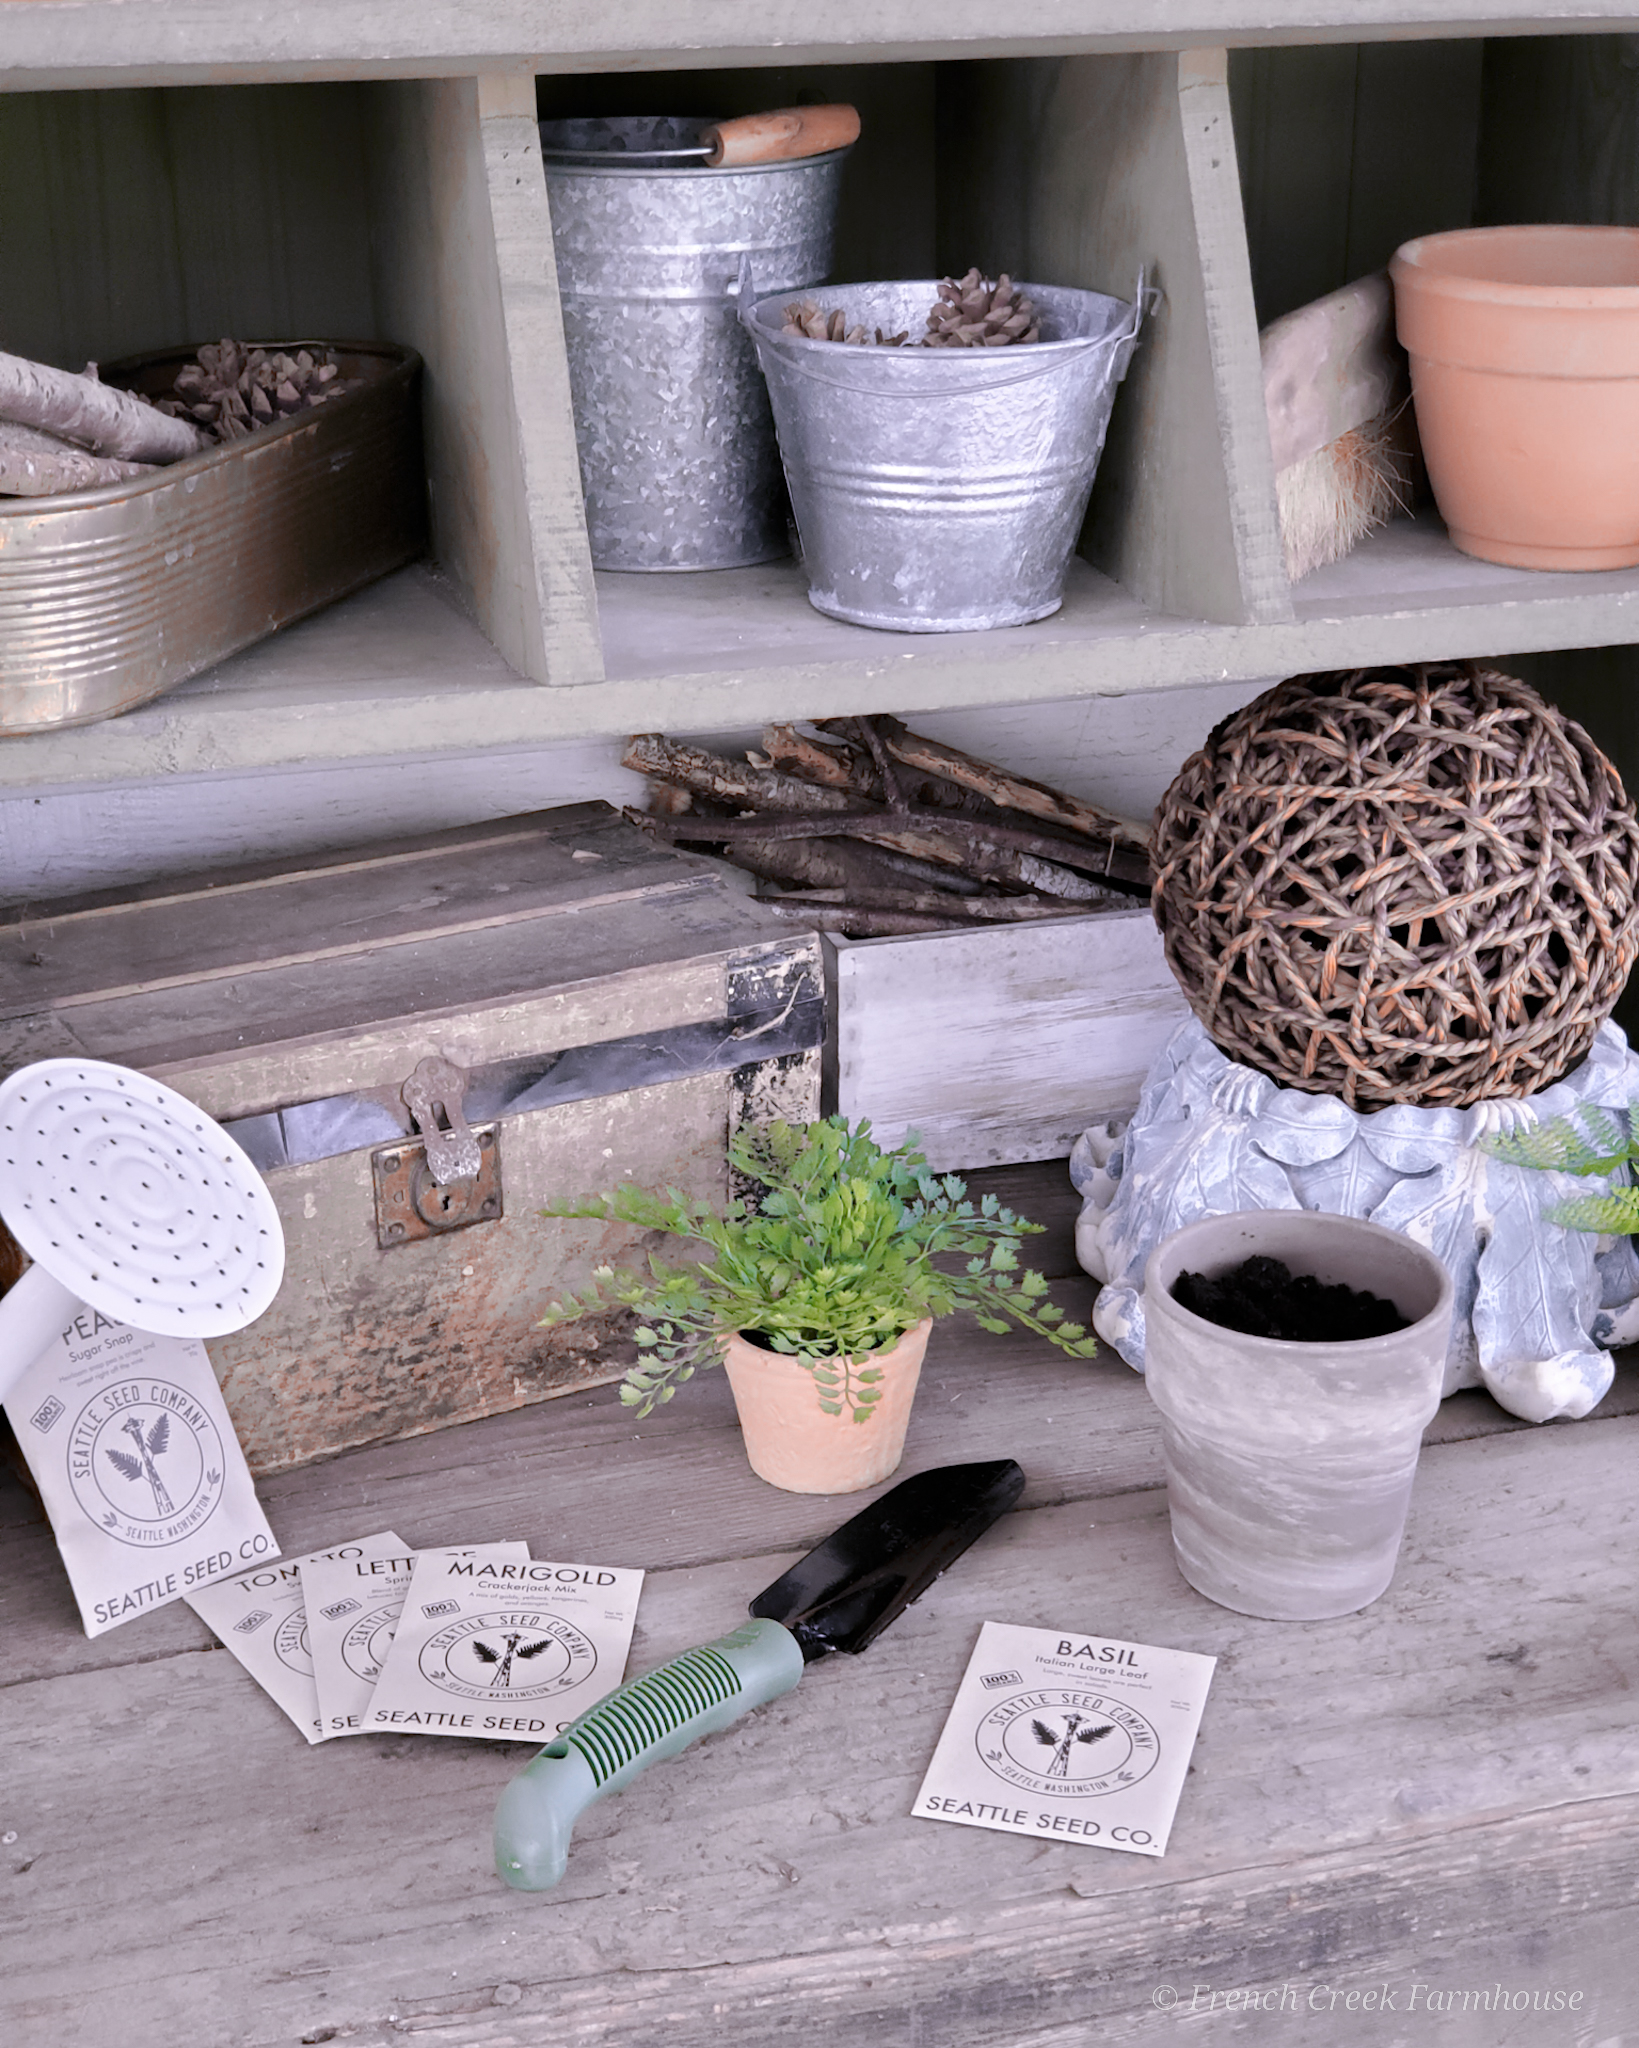 I use a chicken nesting box to organize the supplies I need for the garden